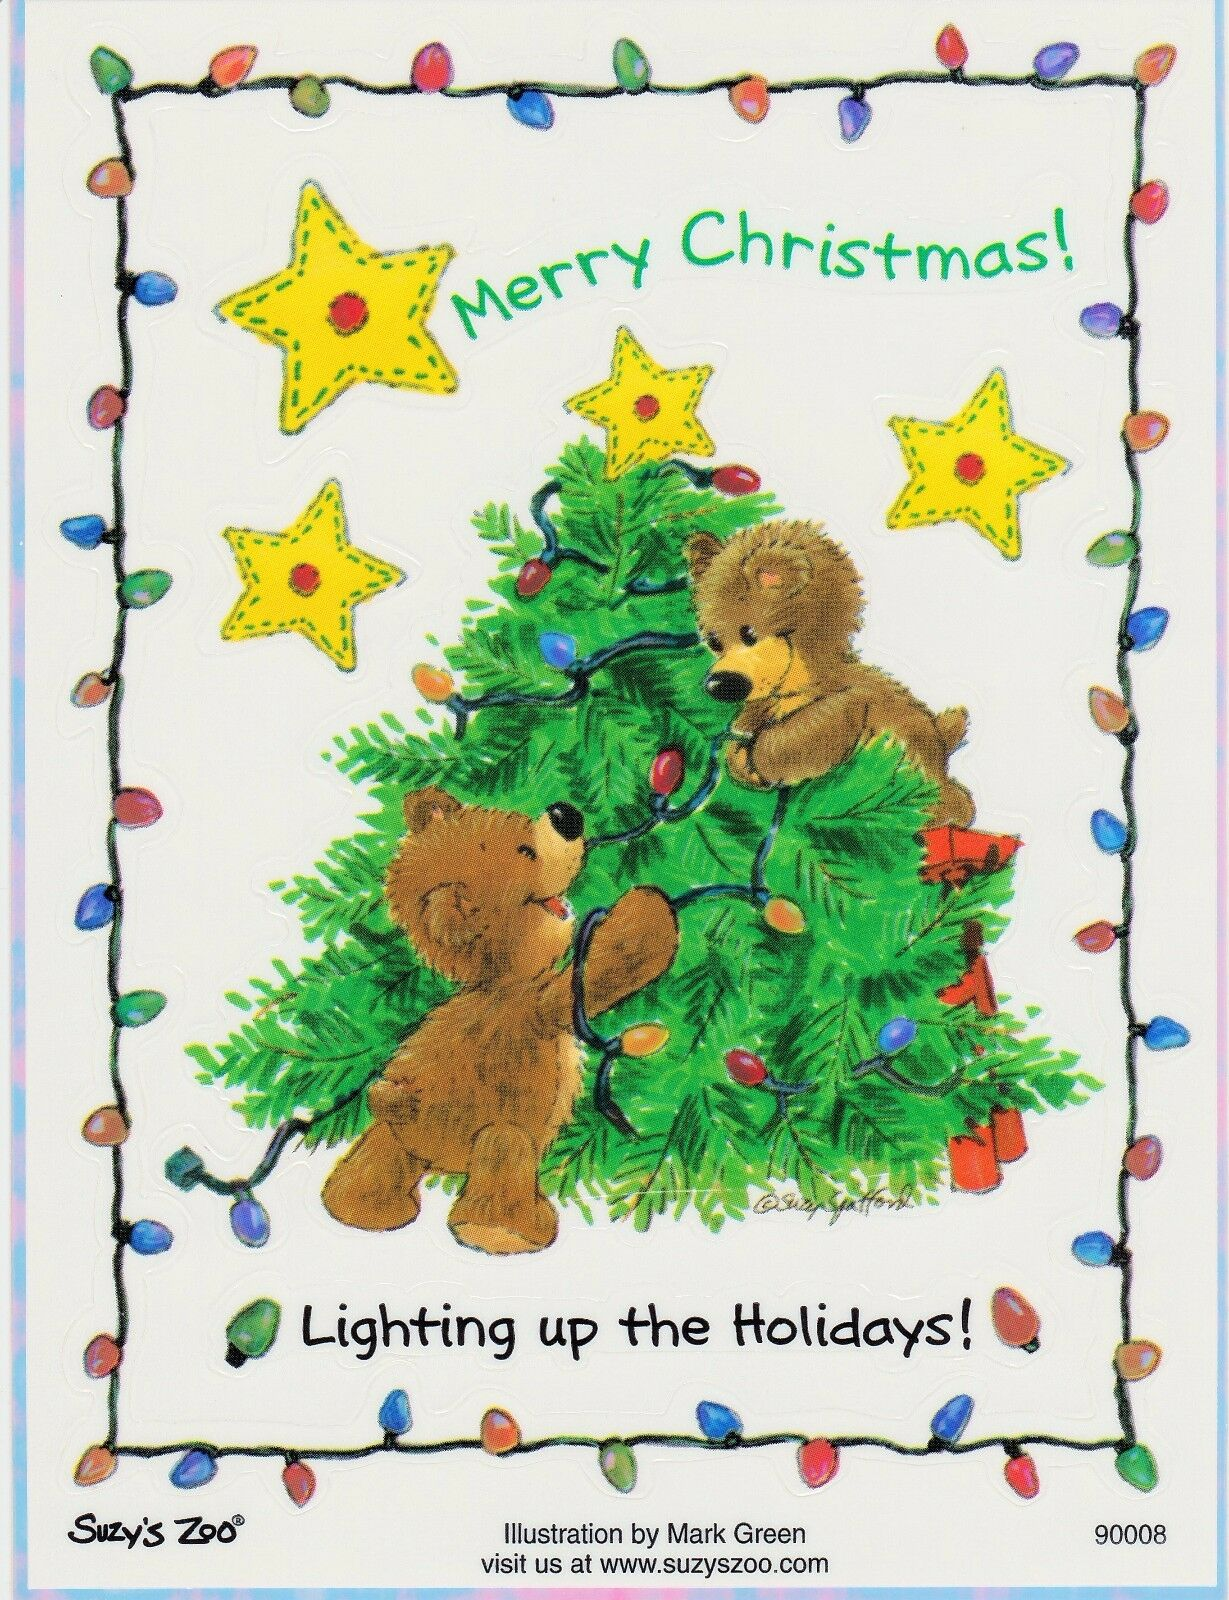 Suzys Zoo Scrapbooking Stickers 25 Sheets Bears Merry Christmas Tree